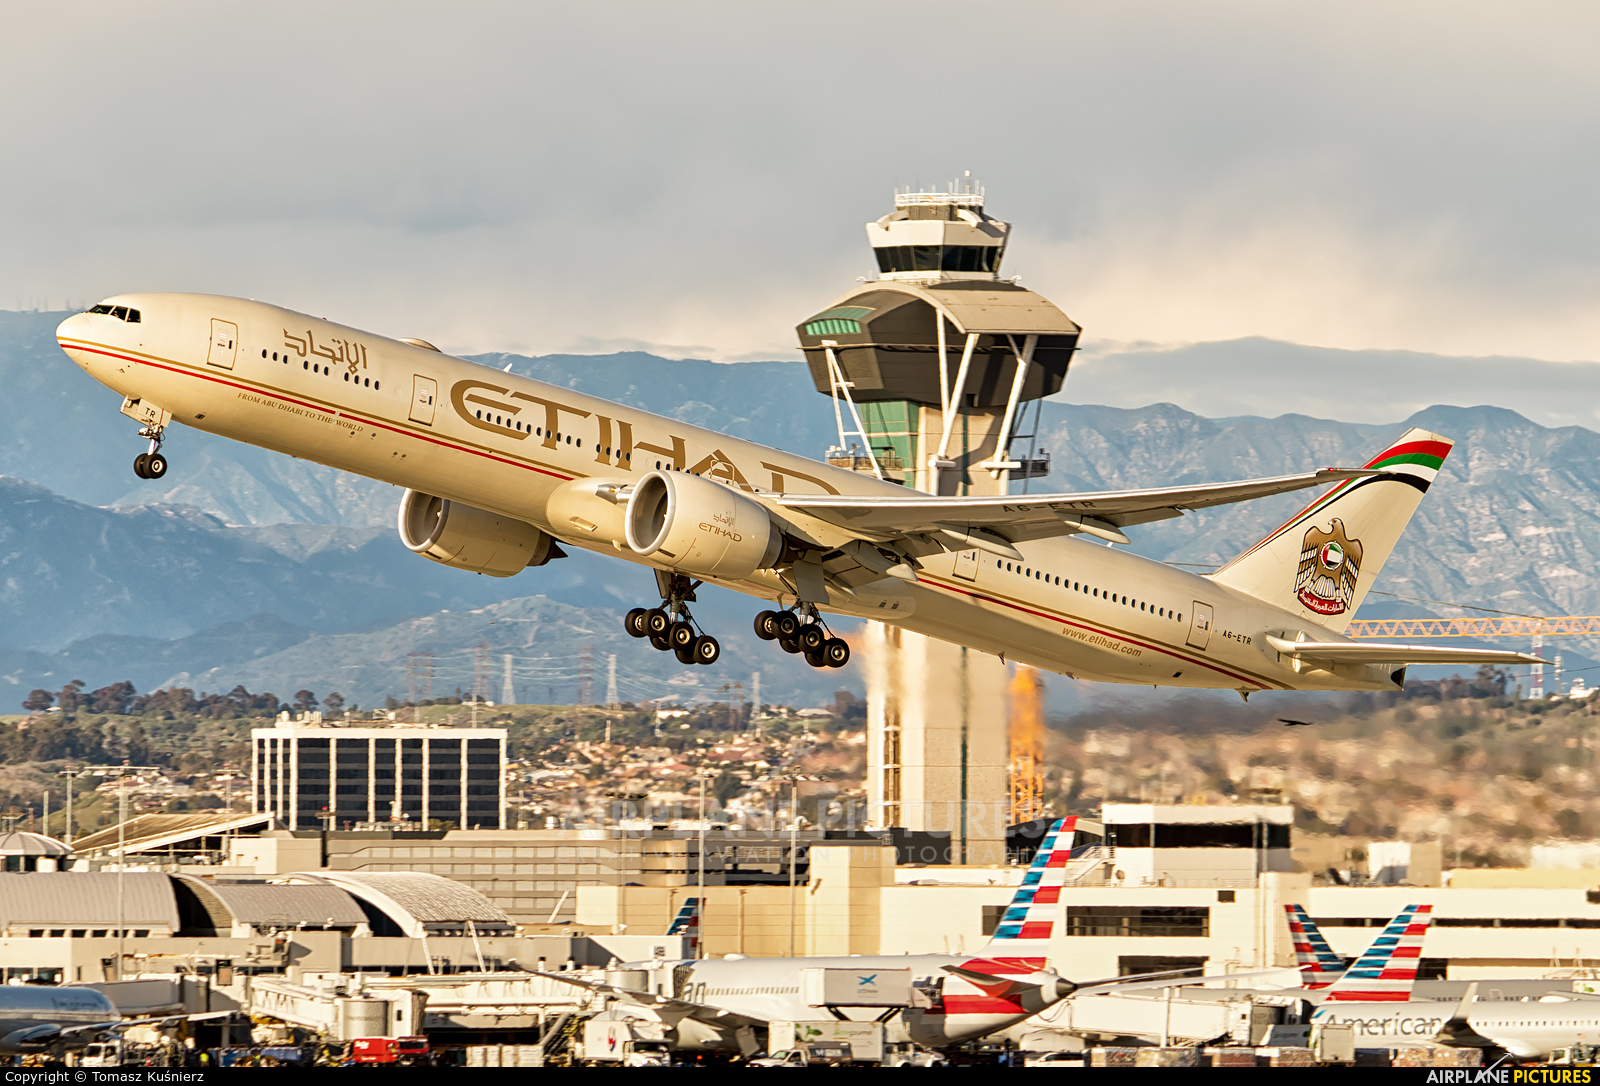 Etihad Airways A6-ETR aircraft at Los Angeles Intl